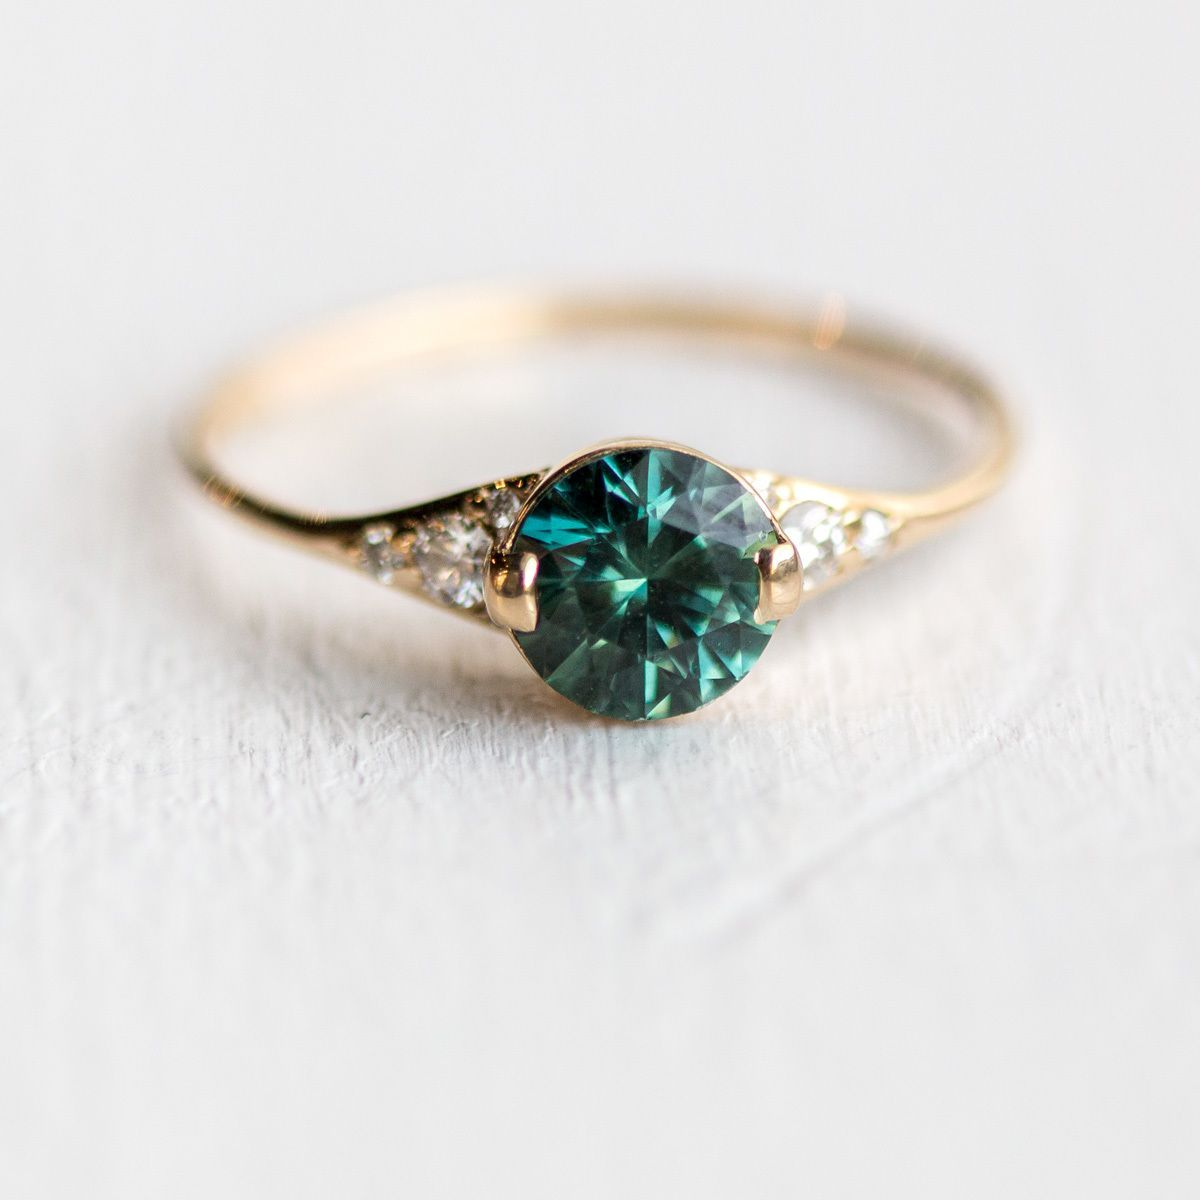 twentieth emerald the romance years year springtime for month birthstone teal emblem gemstone anniversary and is perfect of may marriage stone